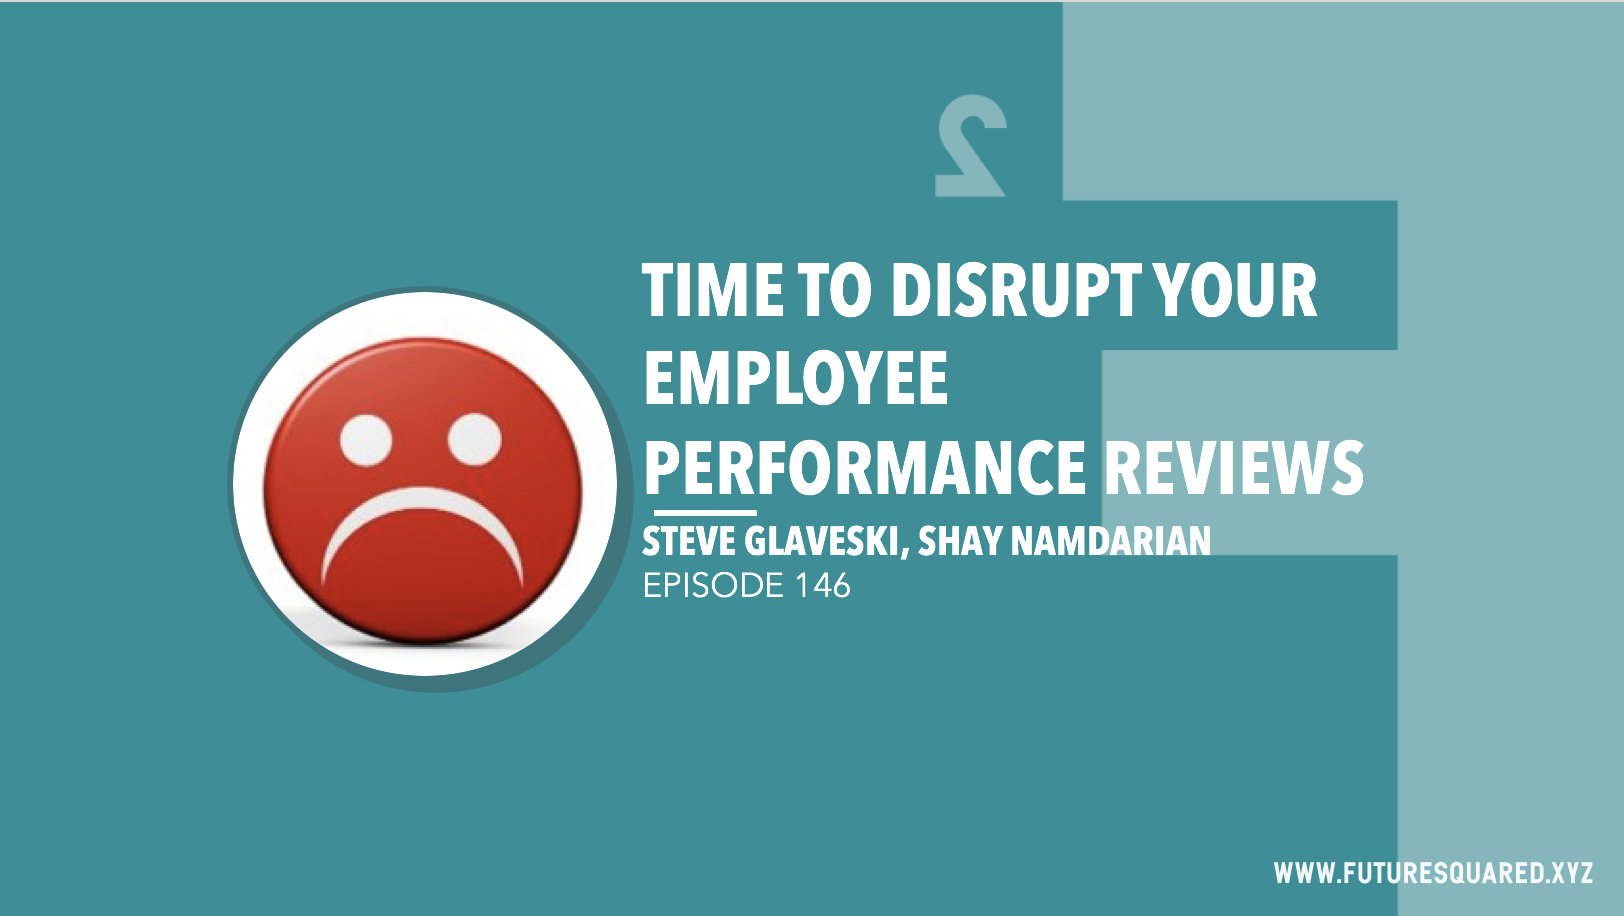 Future Squared Episode #146: Time to Disrupt your Employee Performance Reviews